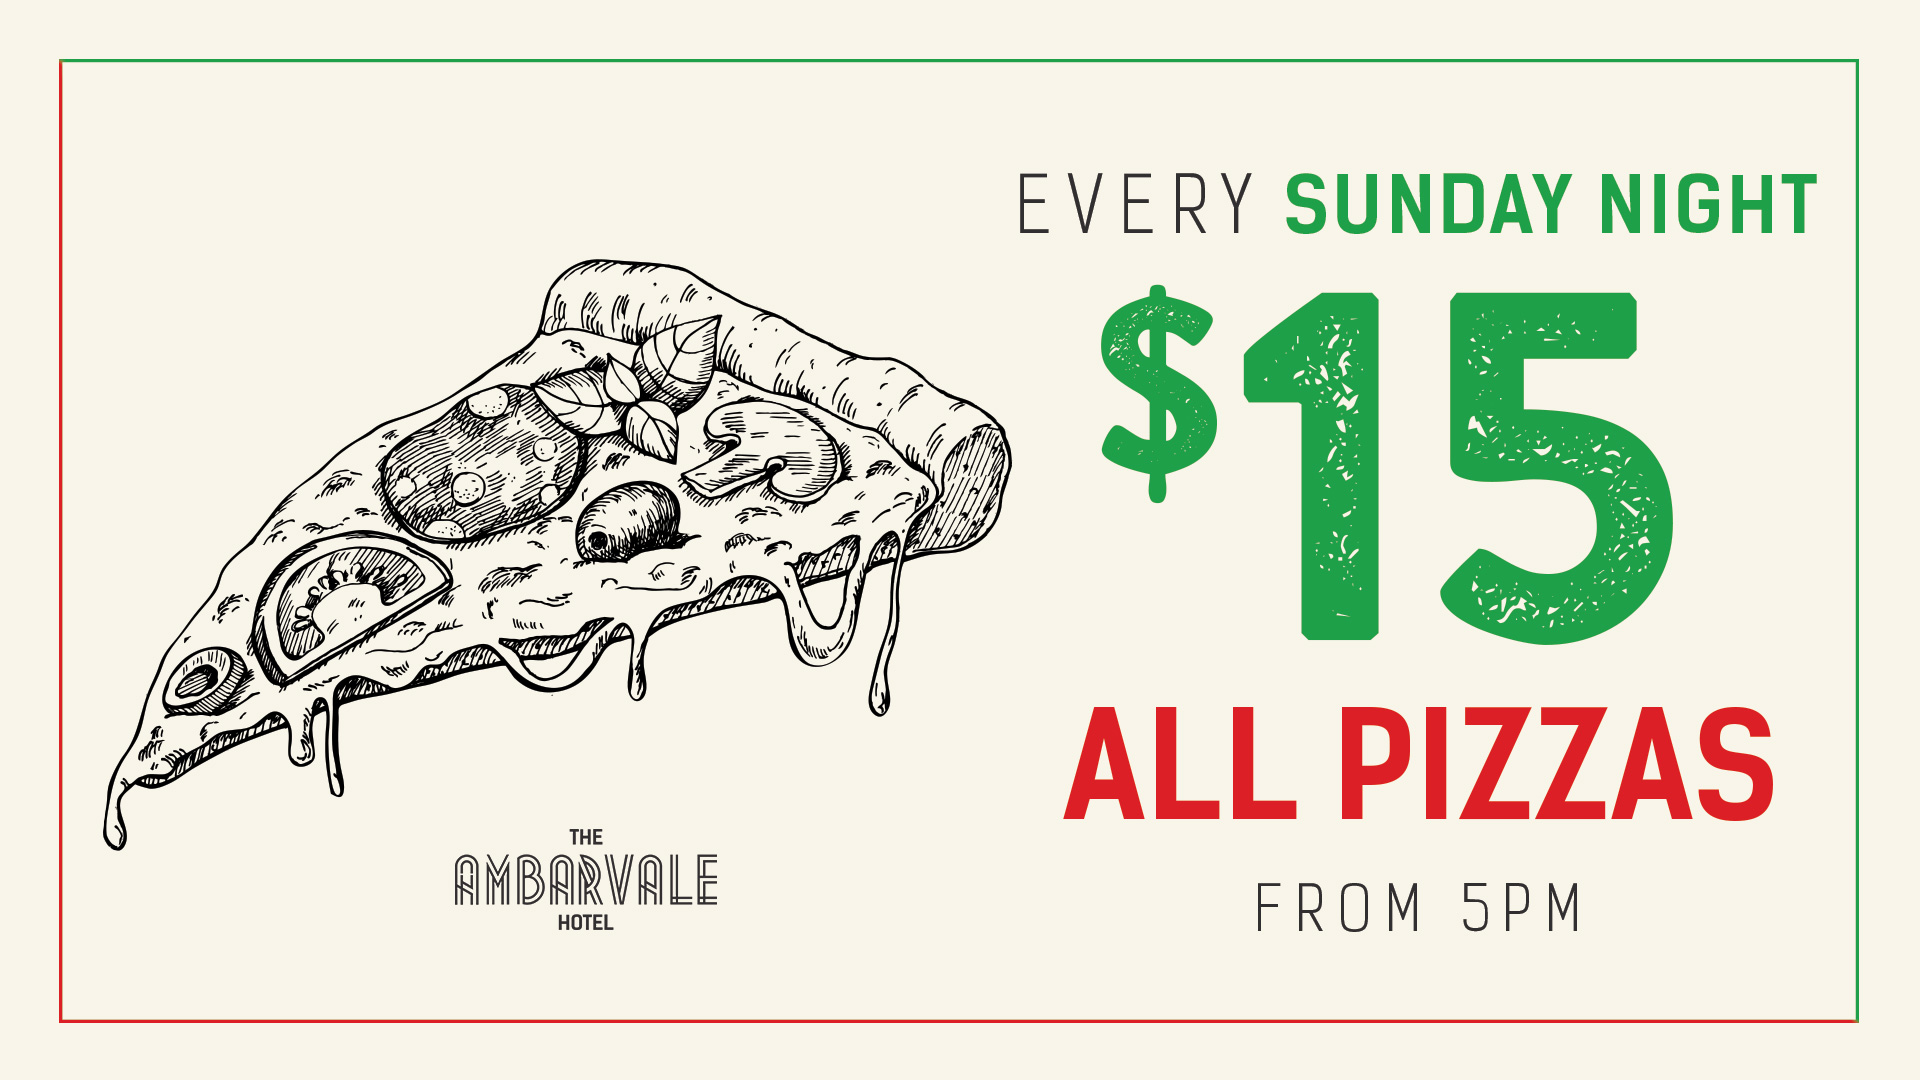 64985_OTHER1_64974_15Dollars_Pizza_Sundays_1920x1080_proof